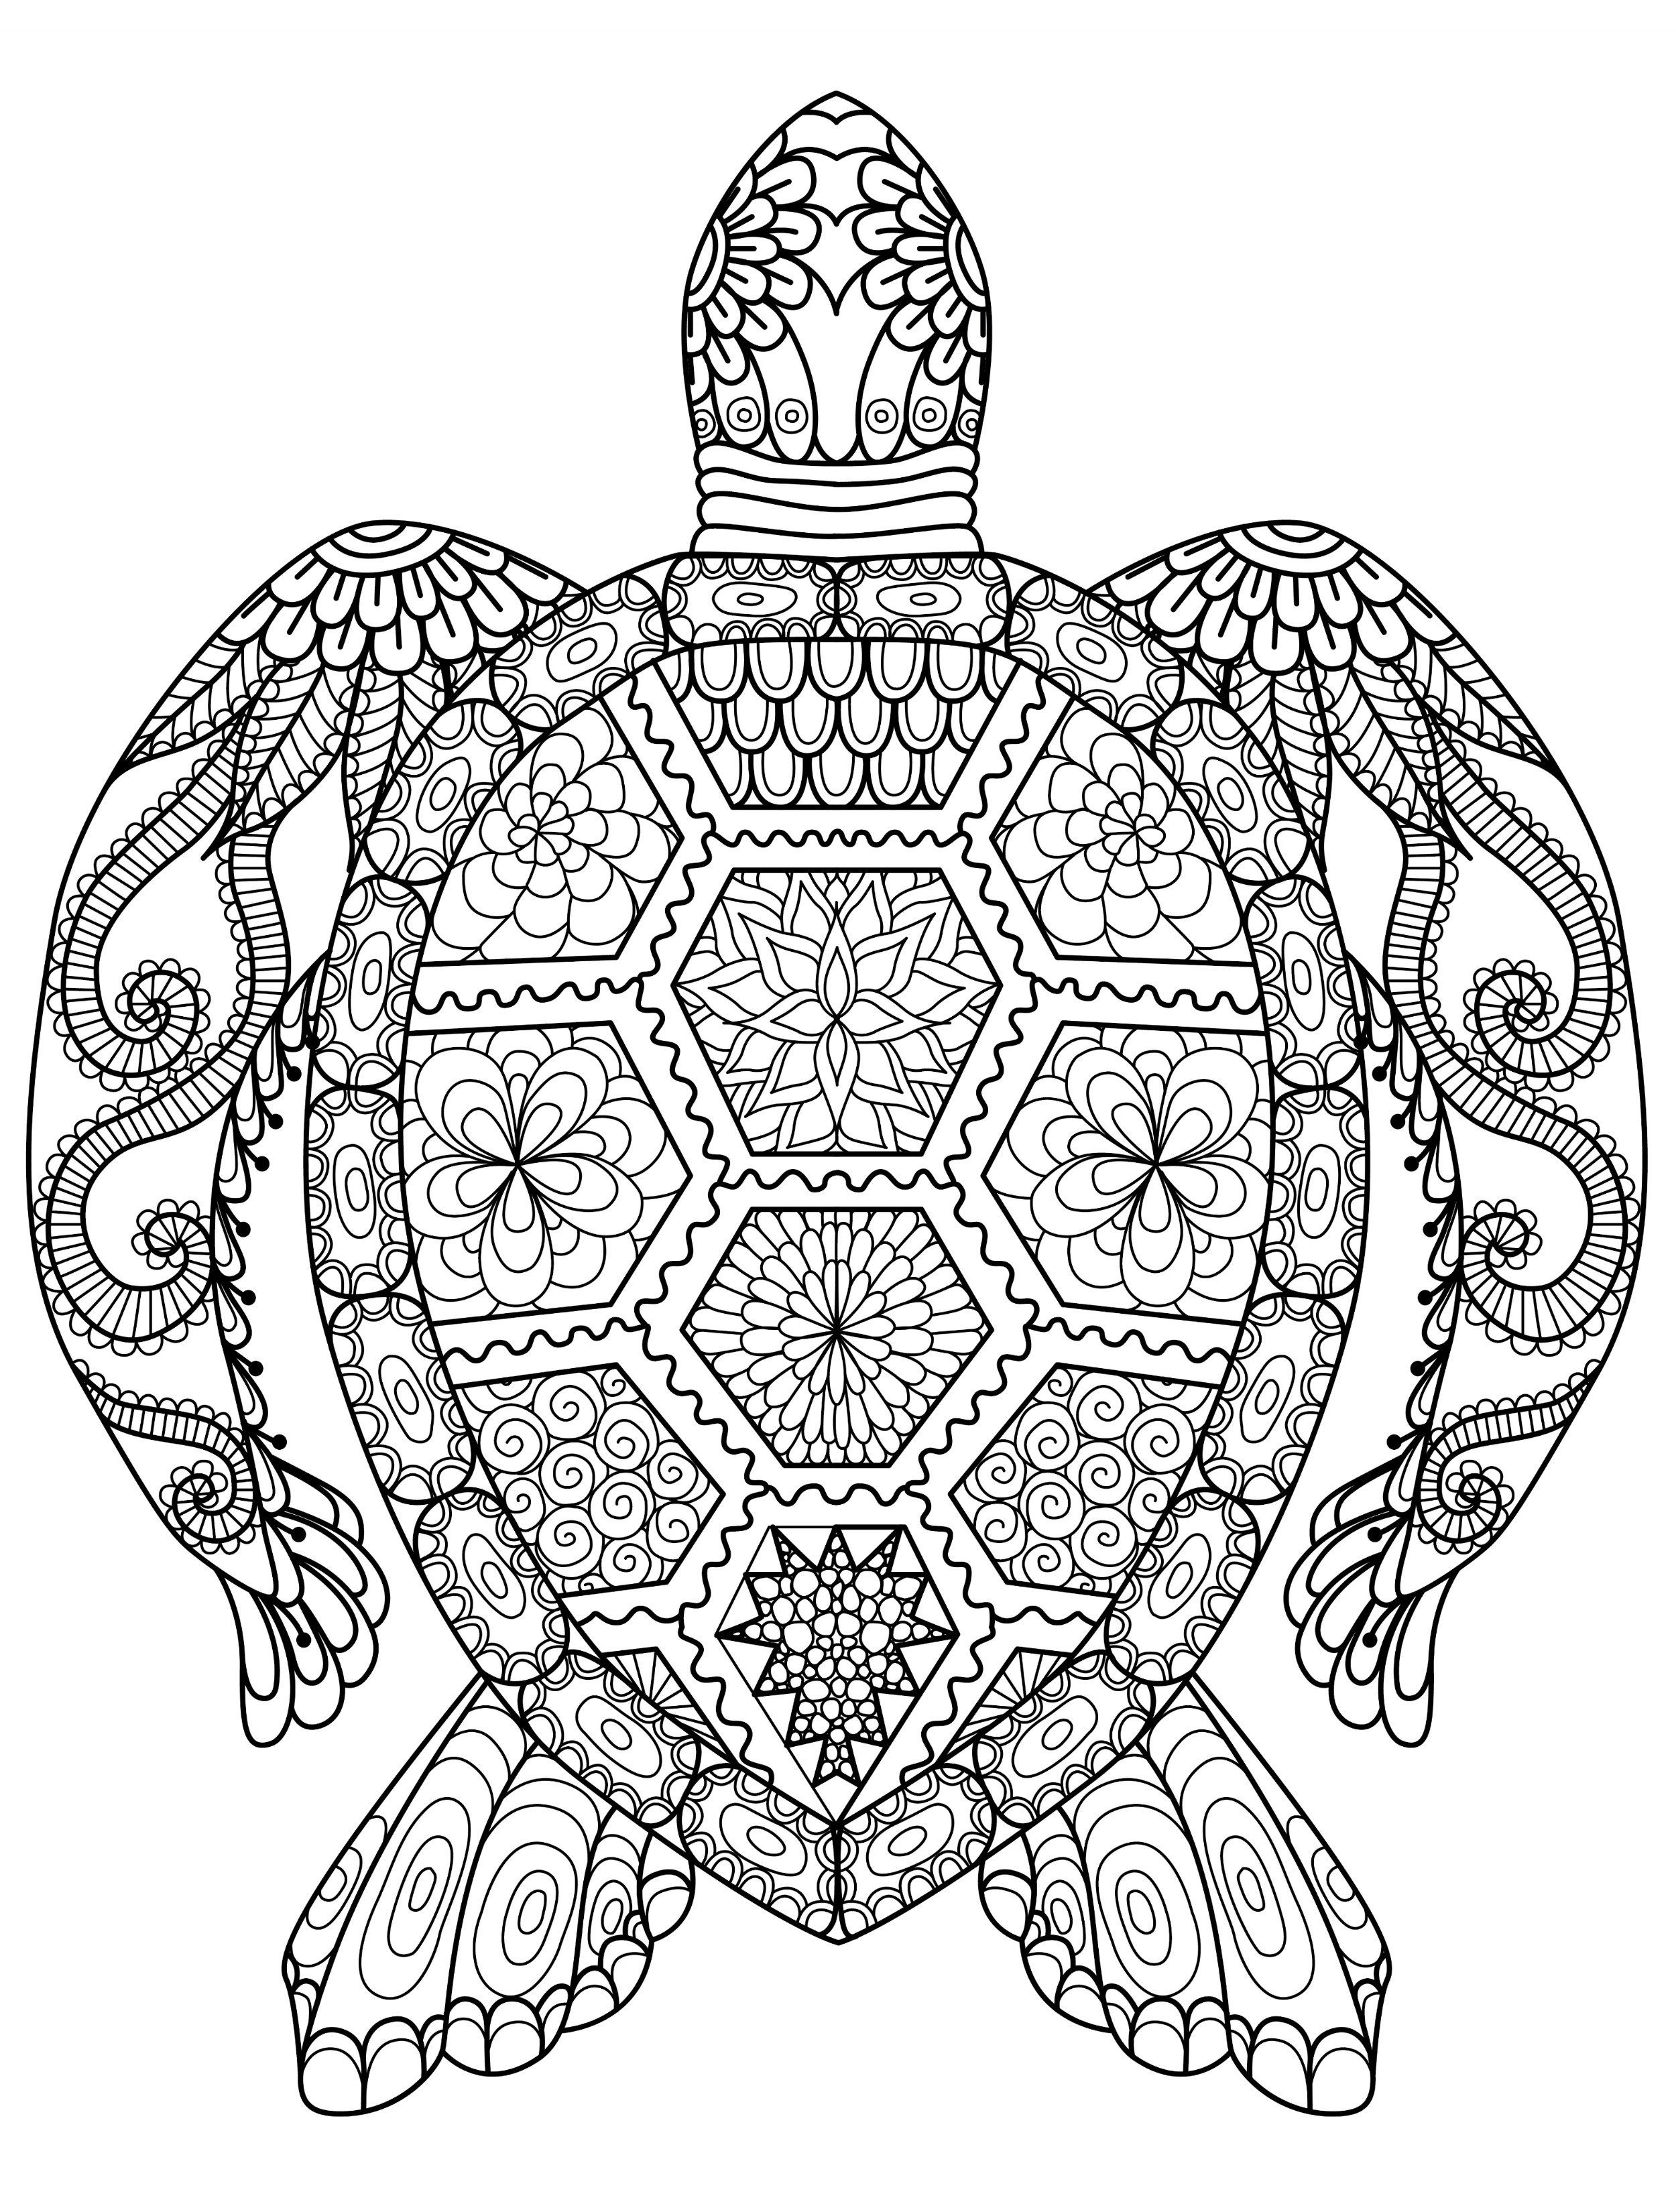 Cool printable coloring pages for adults